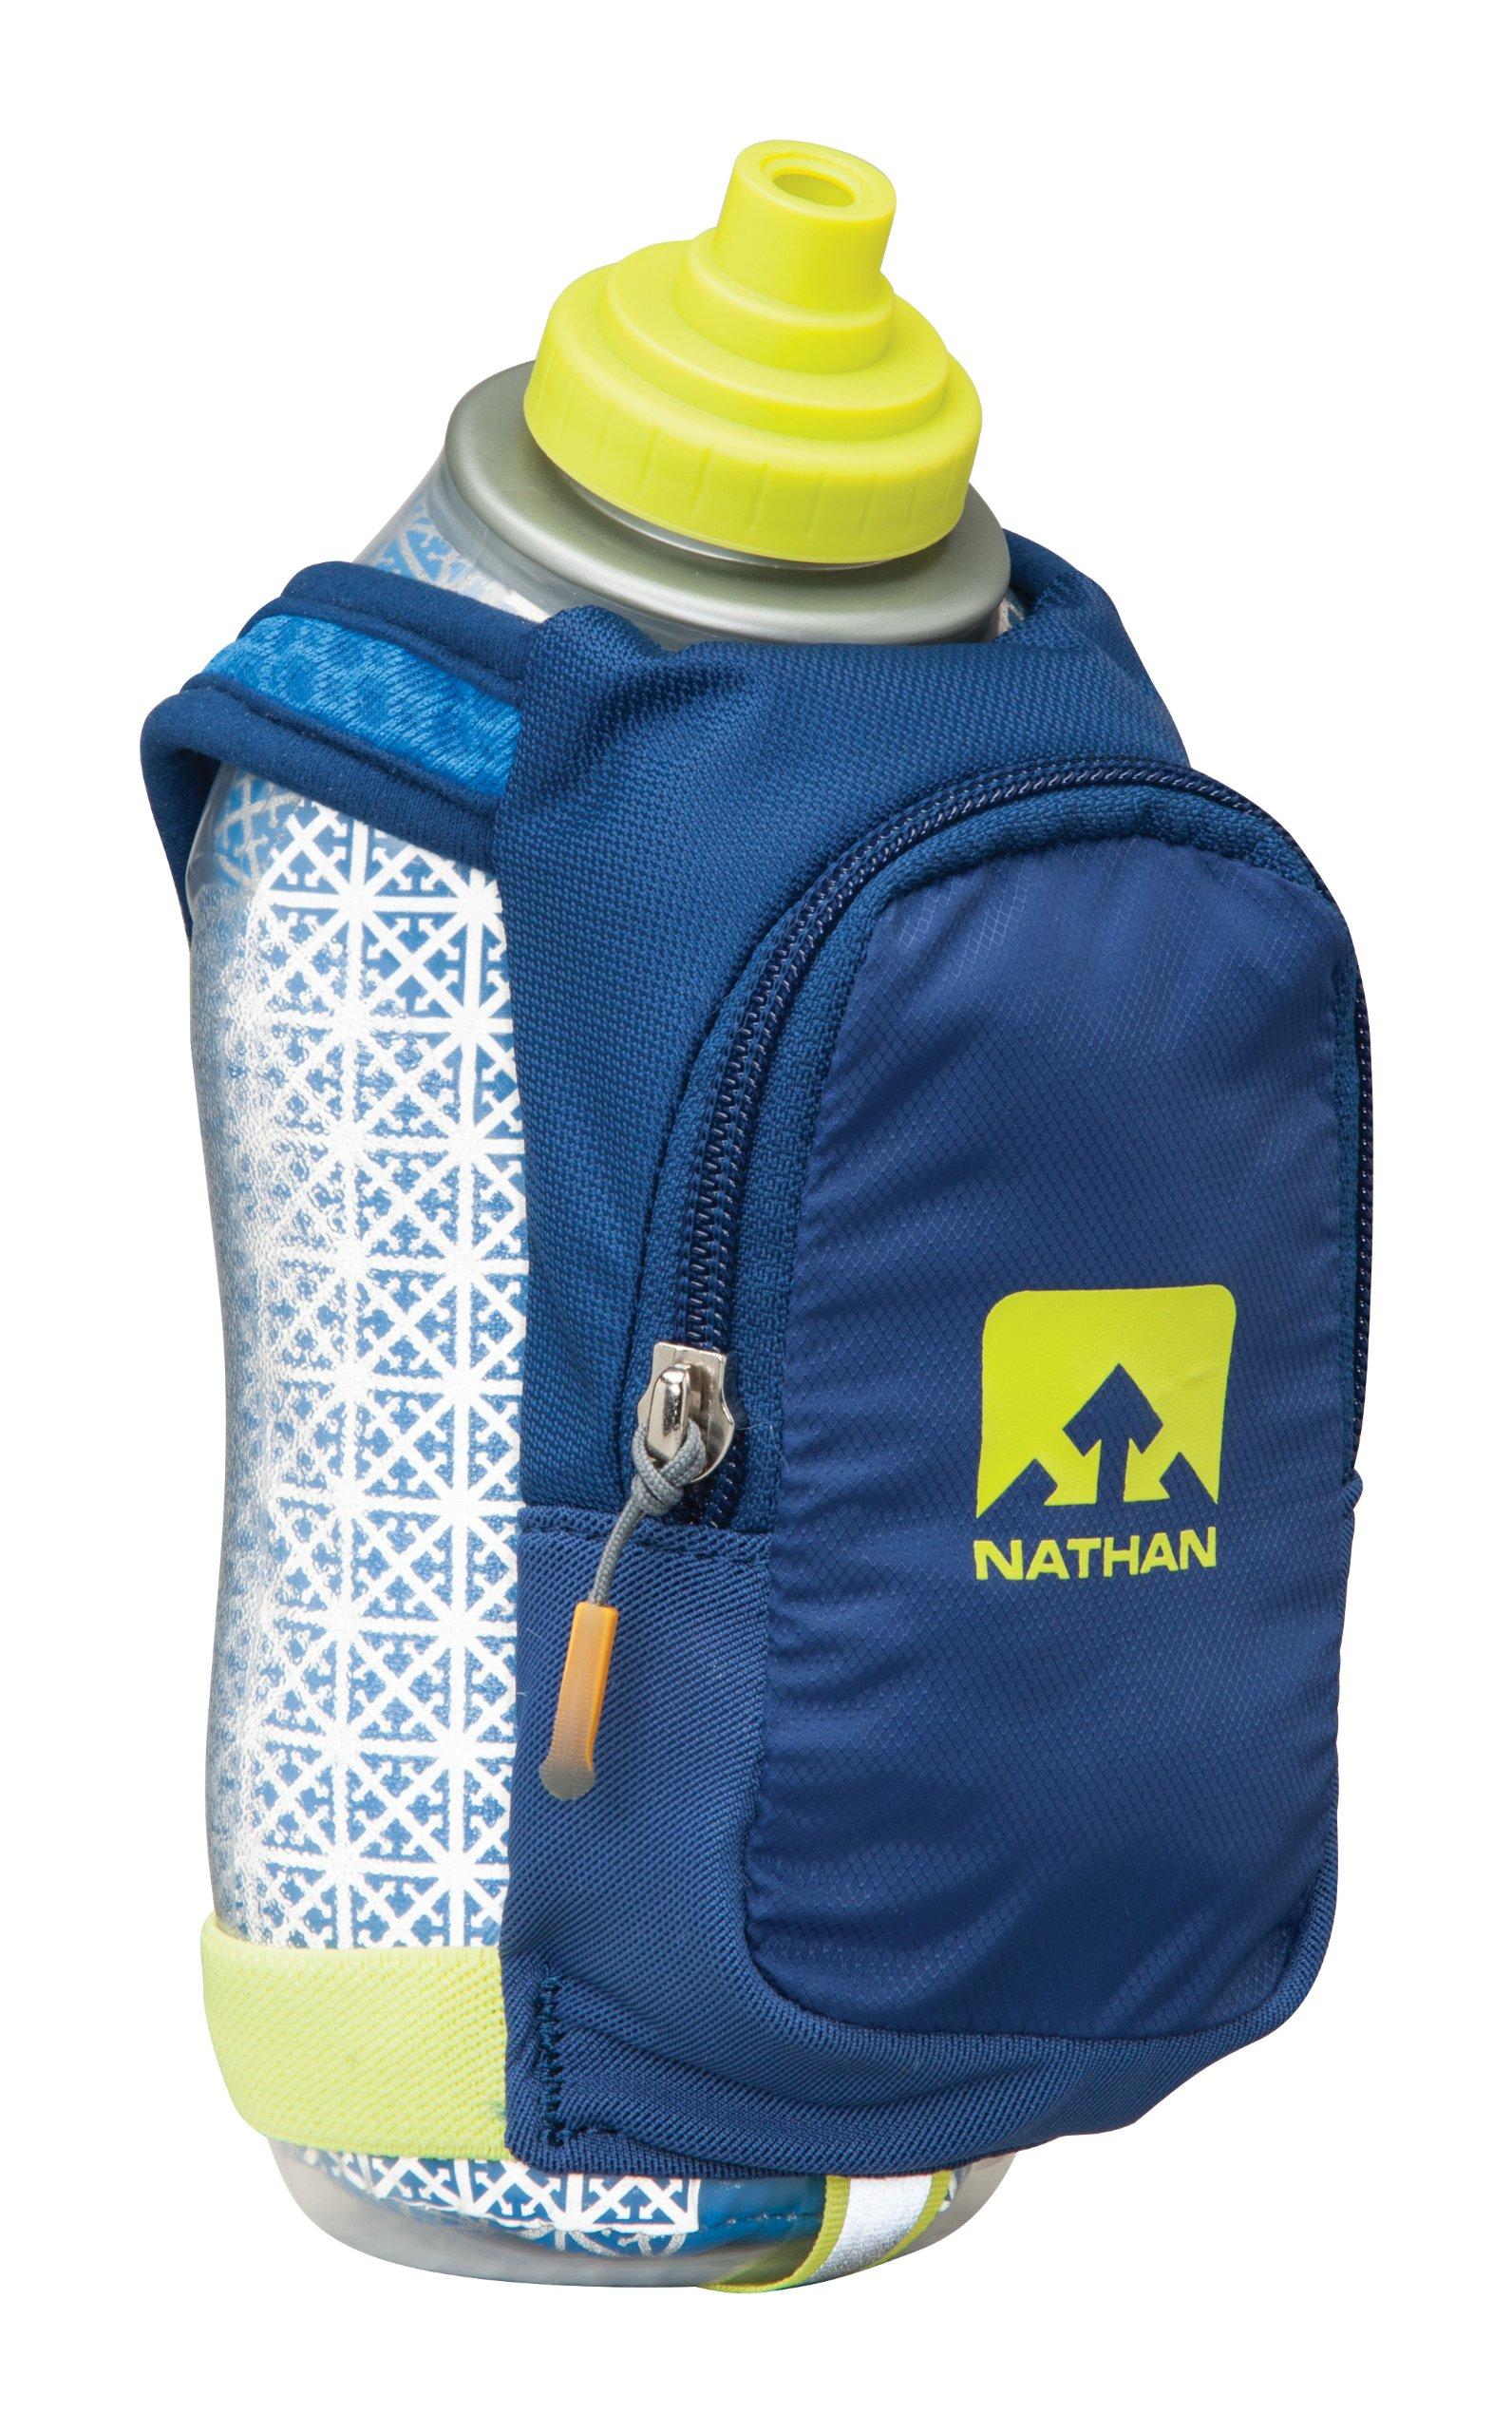 Nathan 4851NEU SpeedDraw Plus Insulated Flask, Estate Blue, One Size by Nathan (Image #2)